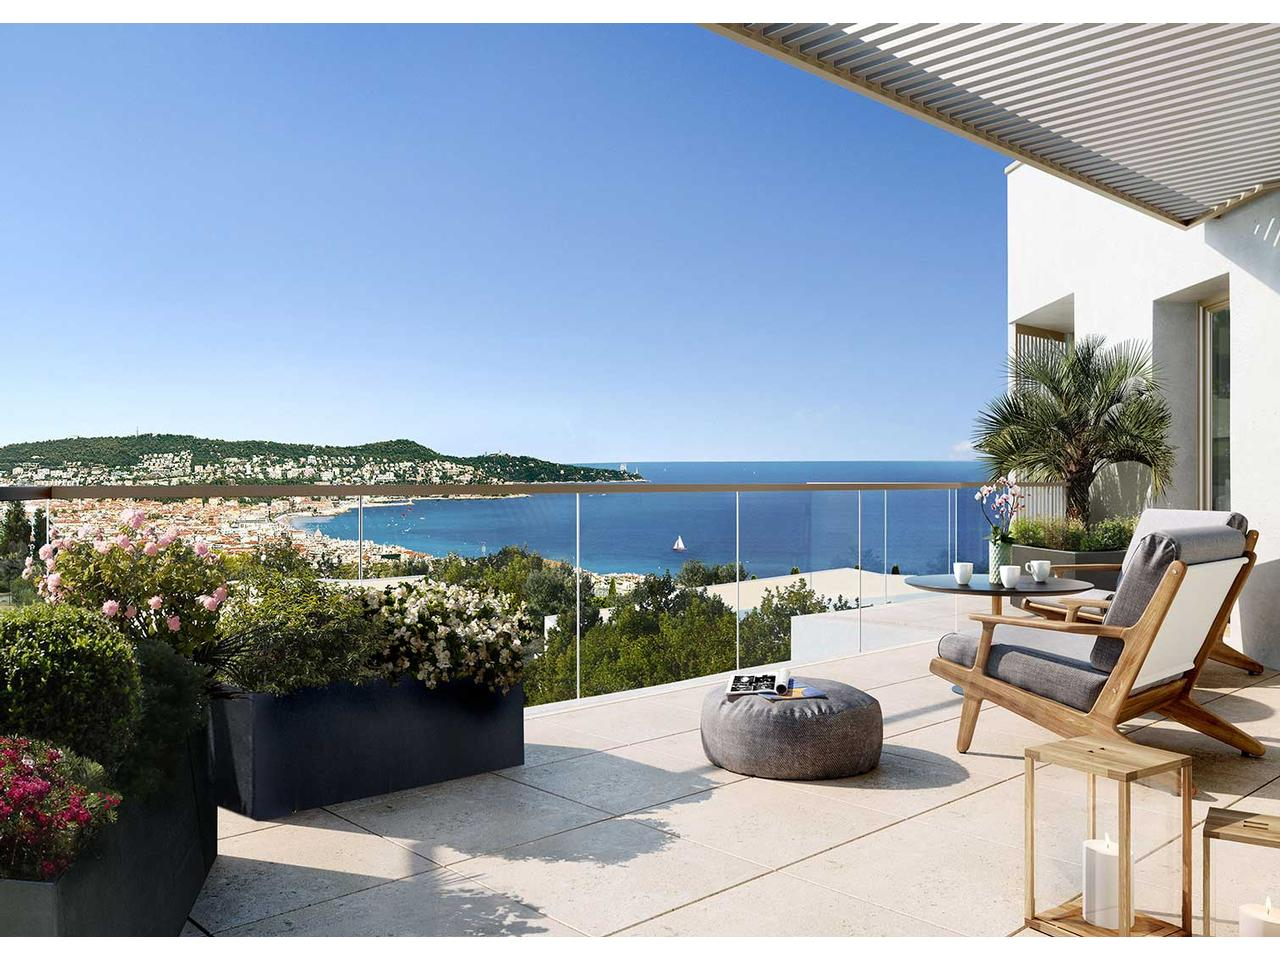 Toit Terrasse Nice Ouest Vente Appartement Nice Immobilier Nice Vue Mer